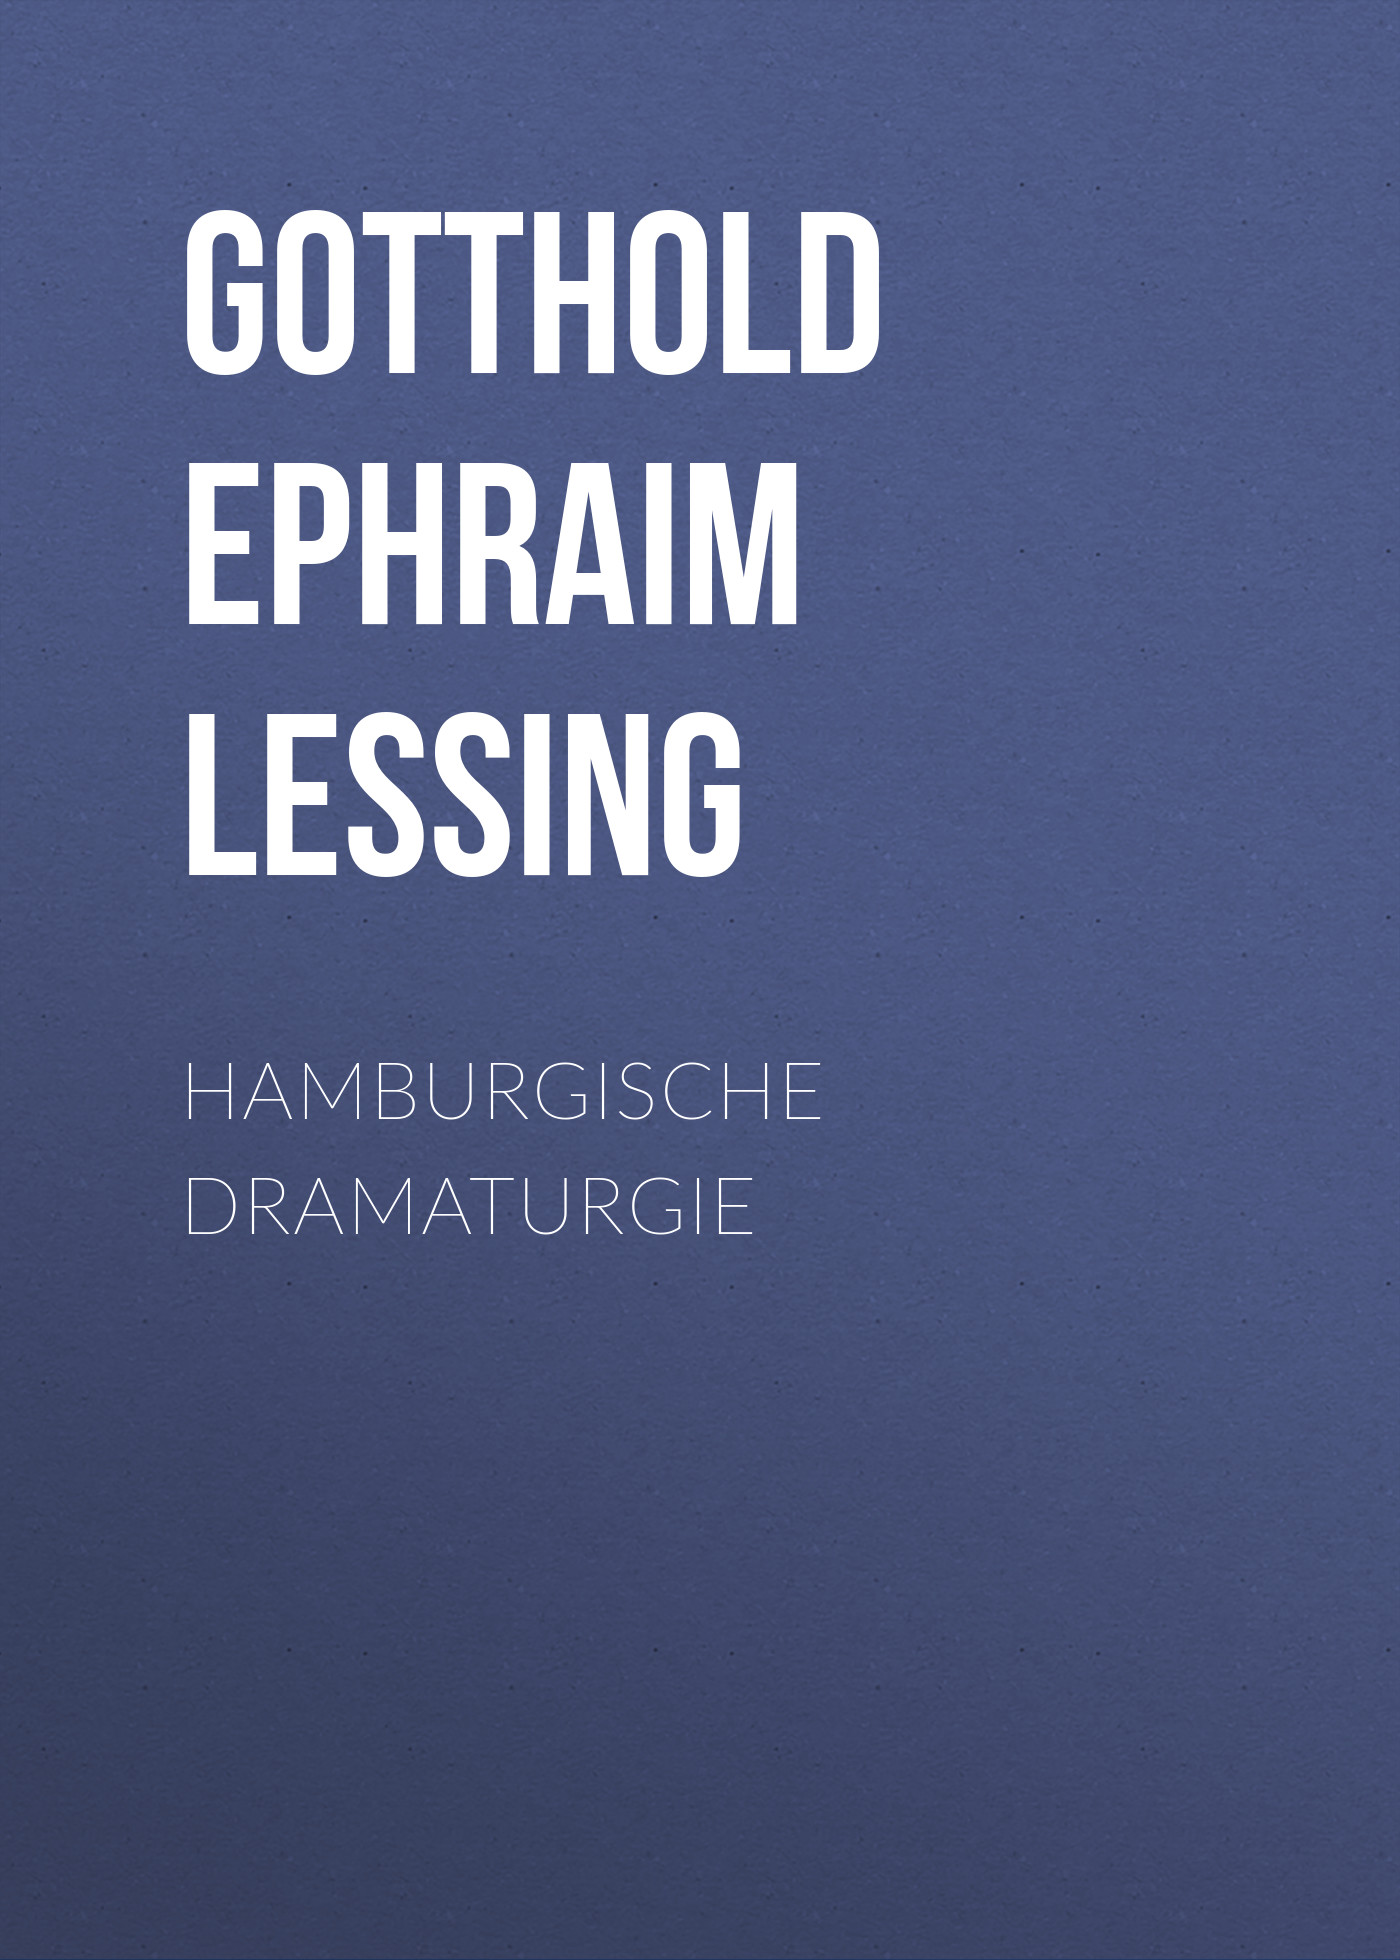 Gotthold Ephraim Lessing Hamburgische Dramaturgie woodyknows super defense nasal filters 2nd generation nose masks pollen allergies dust allergy relief no pm2 5 air pollution